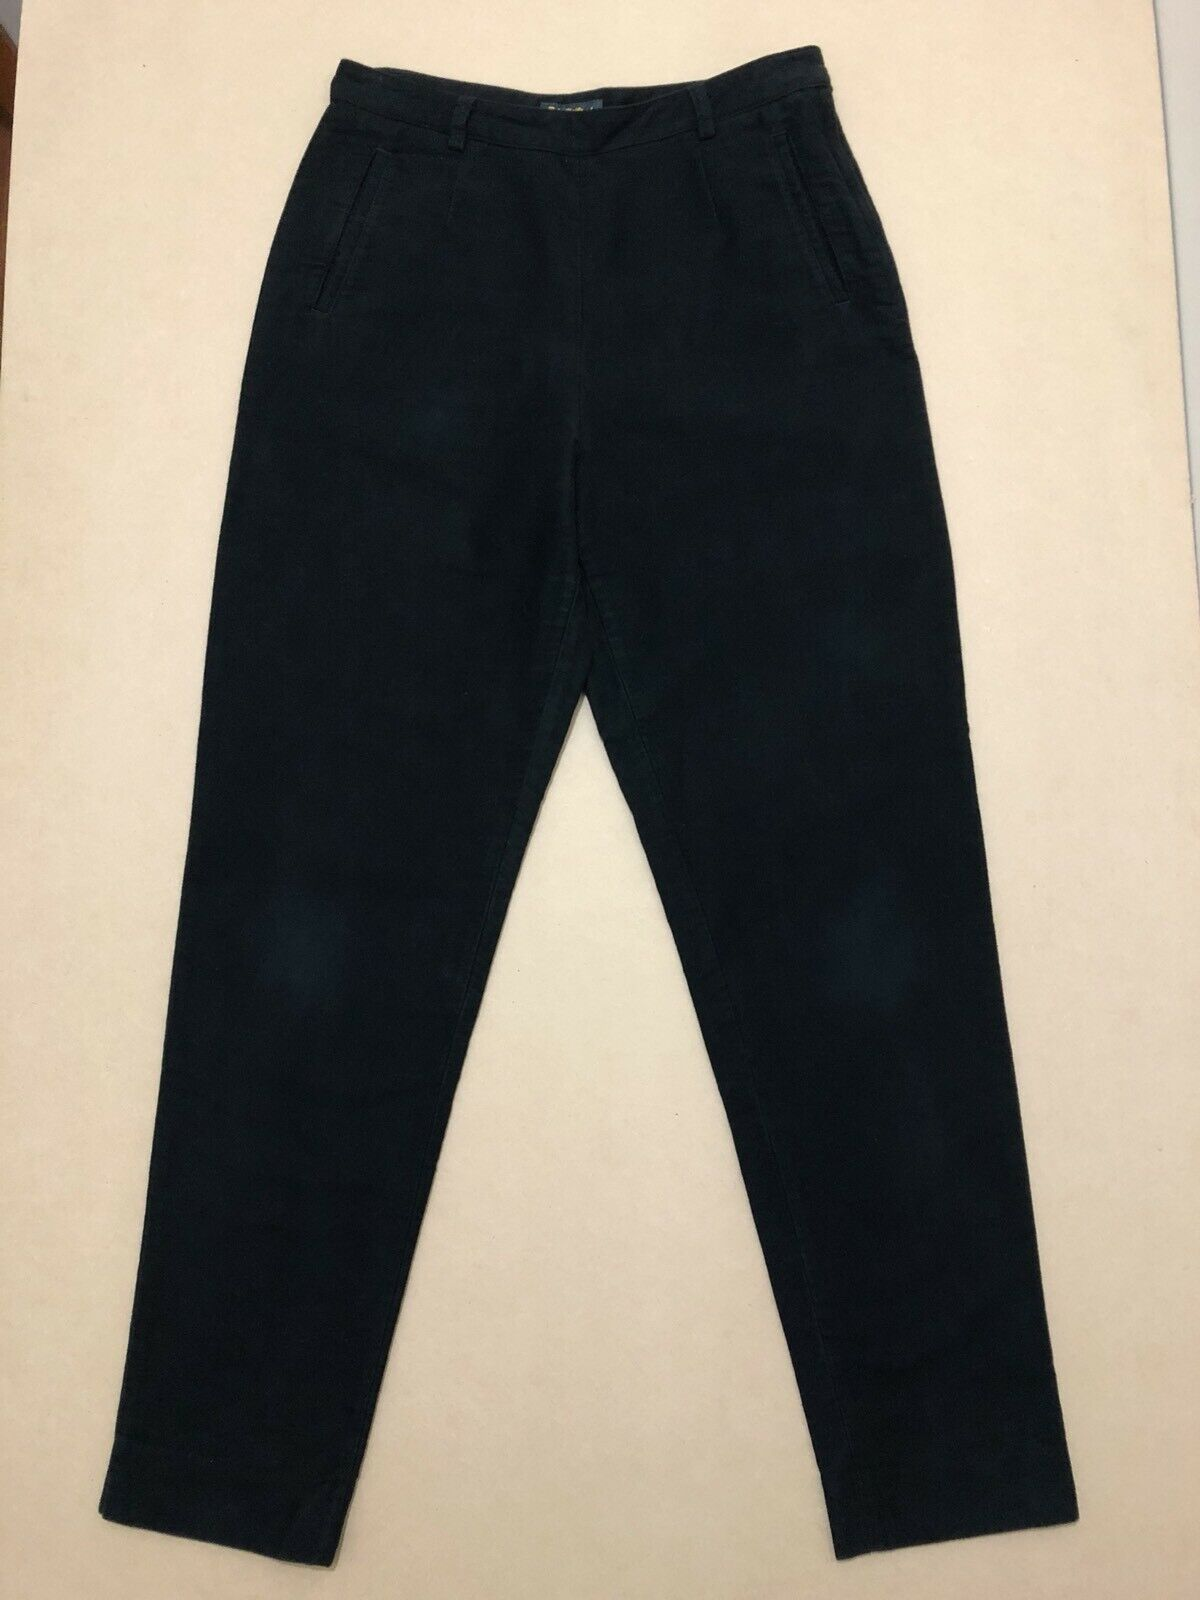 RM Williams Pants damen  Größe 14  Great Cond Moleskin Style Trousers Casual